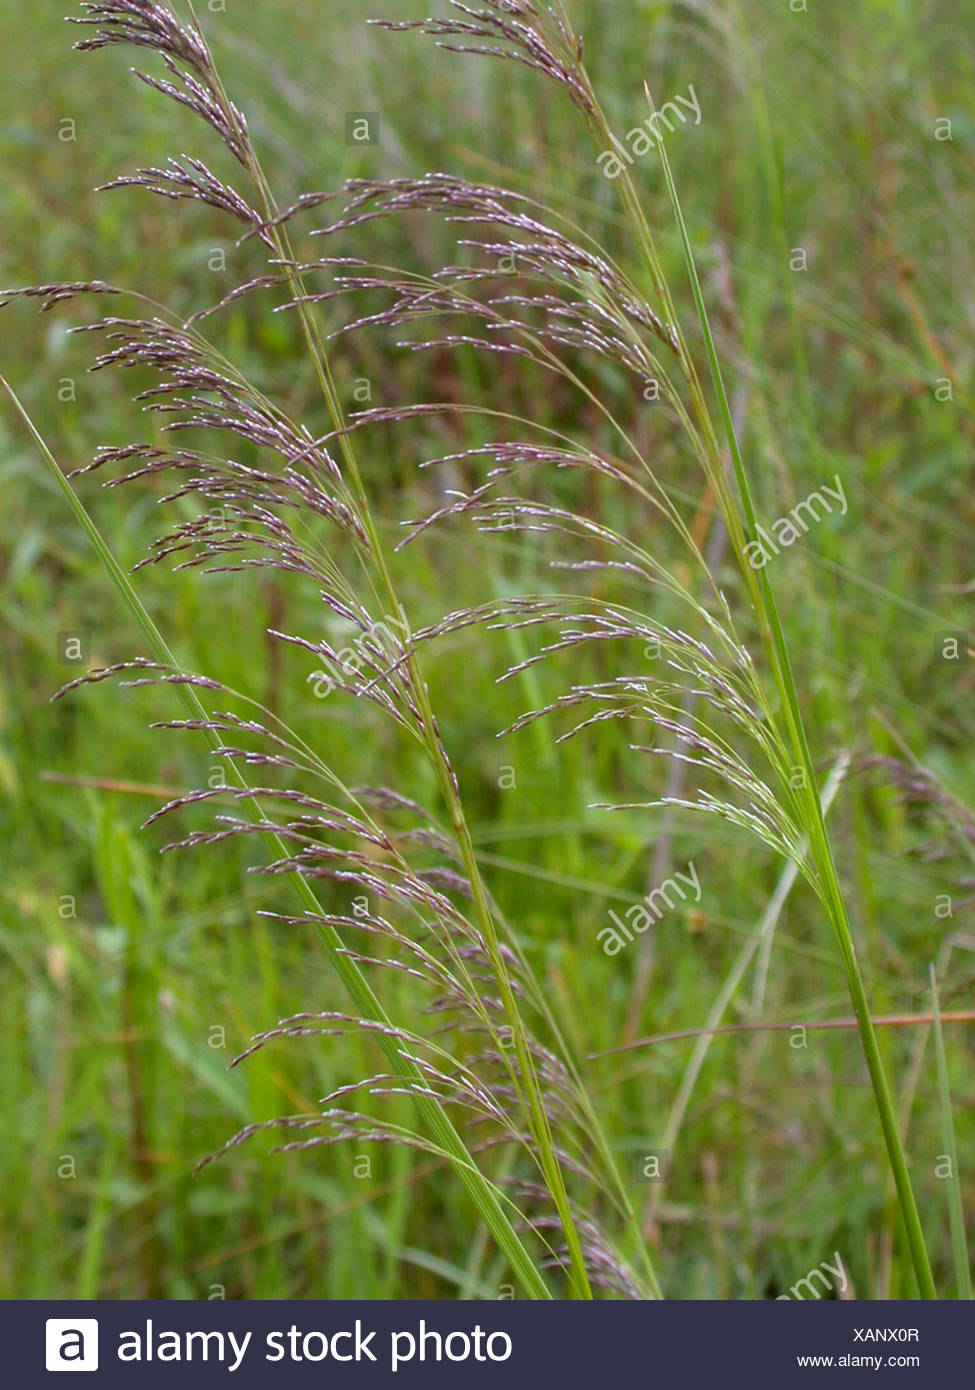 tufted hair-grass (Deschampsia cespitosa), panicles, Germany Stock Photo